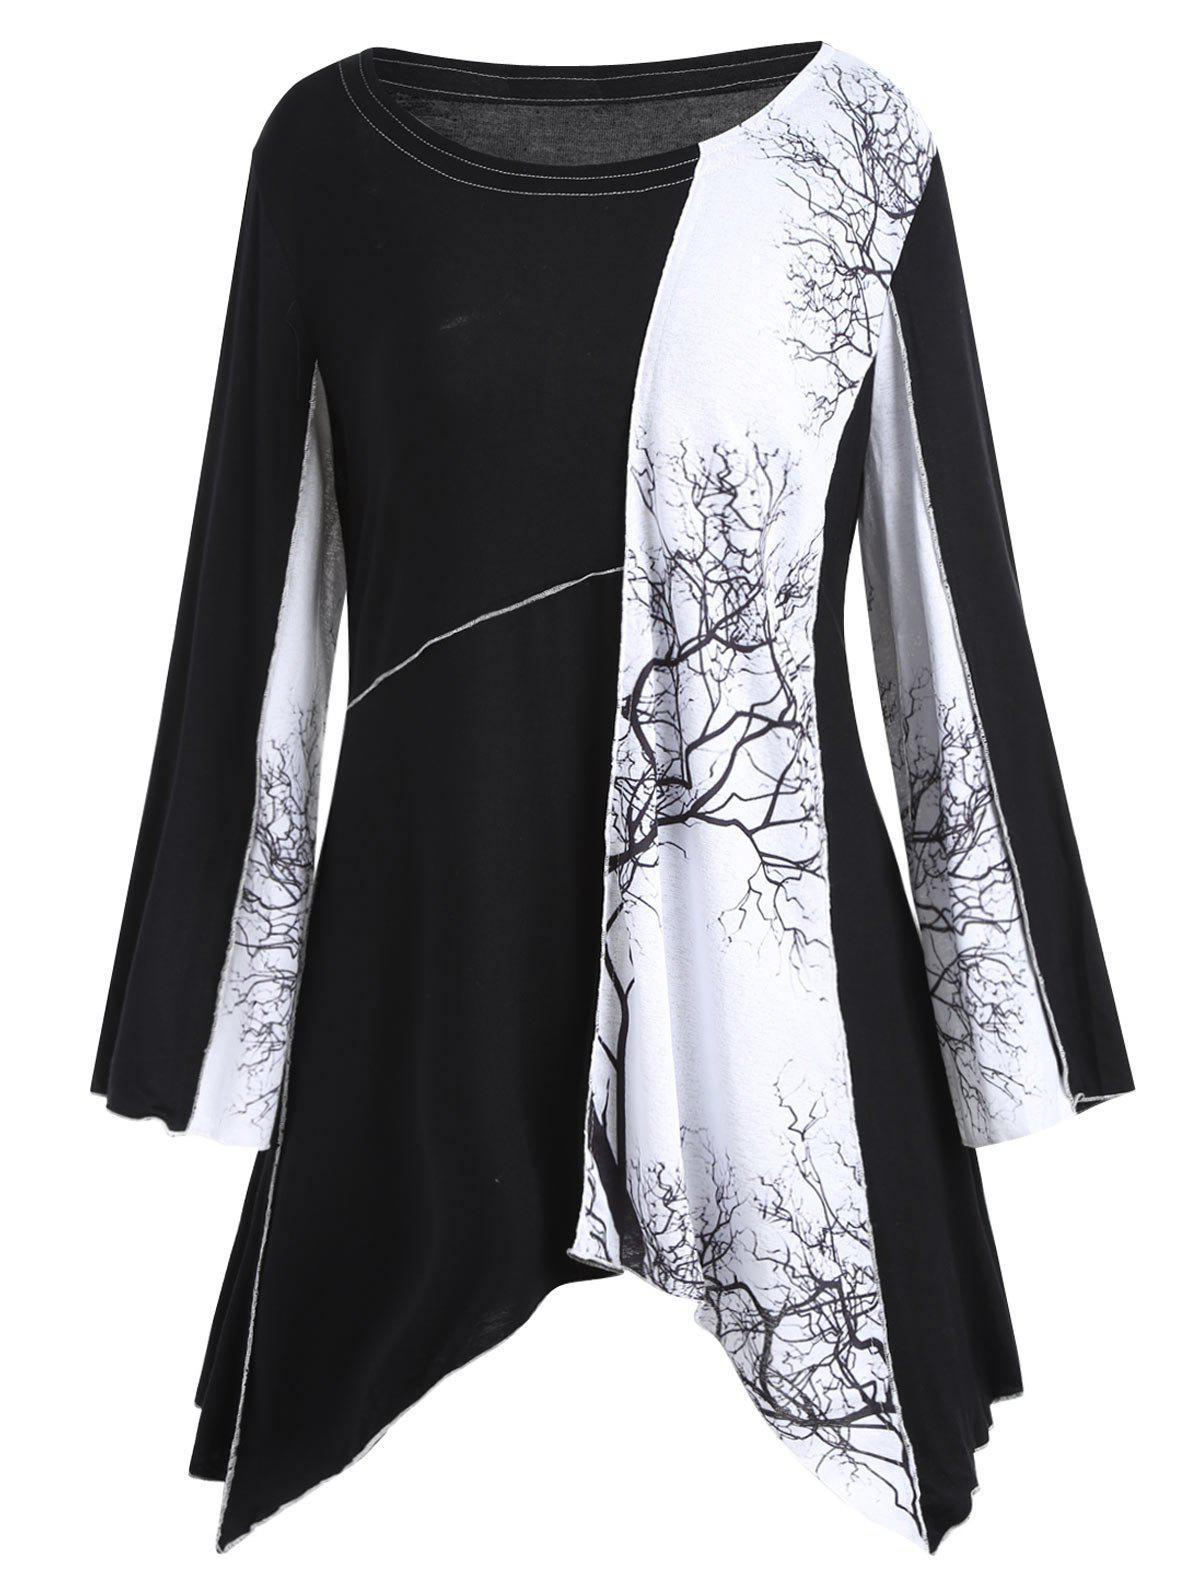 Plus Size Tree Graphic Long Sleeve Asymmetric TopWOMEN<br><br>Size: 4XL; Color: BLACK; Material: Cotton,Cotton Blends,Polyester; Shirt Length: Long; Sleeve Length: Full; Collar: Scoop Neck; Style: Fashion; Season: Fall,Spring; Pattern Type: Plant,Print; Weight: 0.3200kg; Package Contents: 1 x Tee;